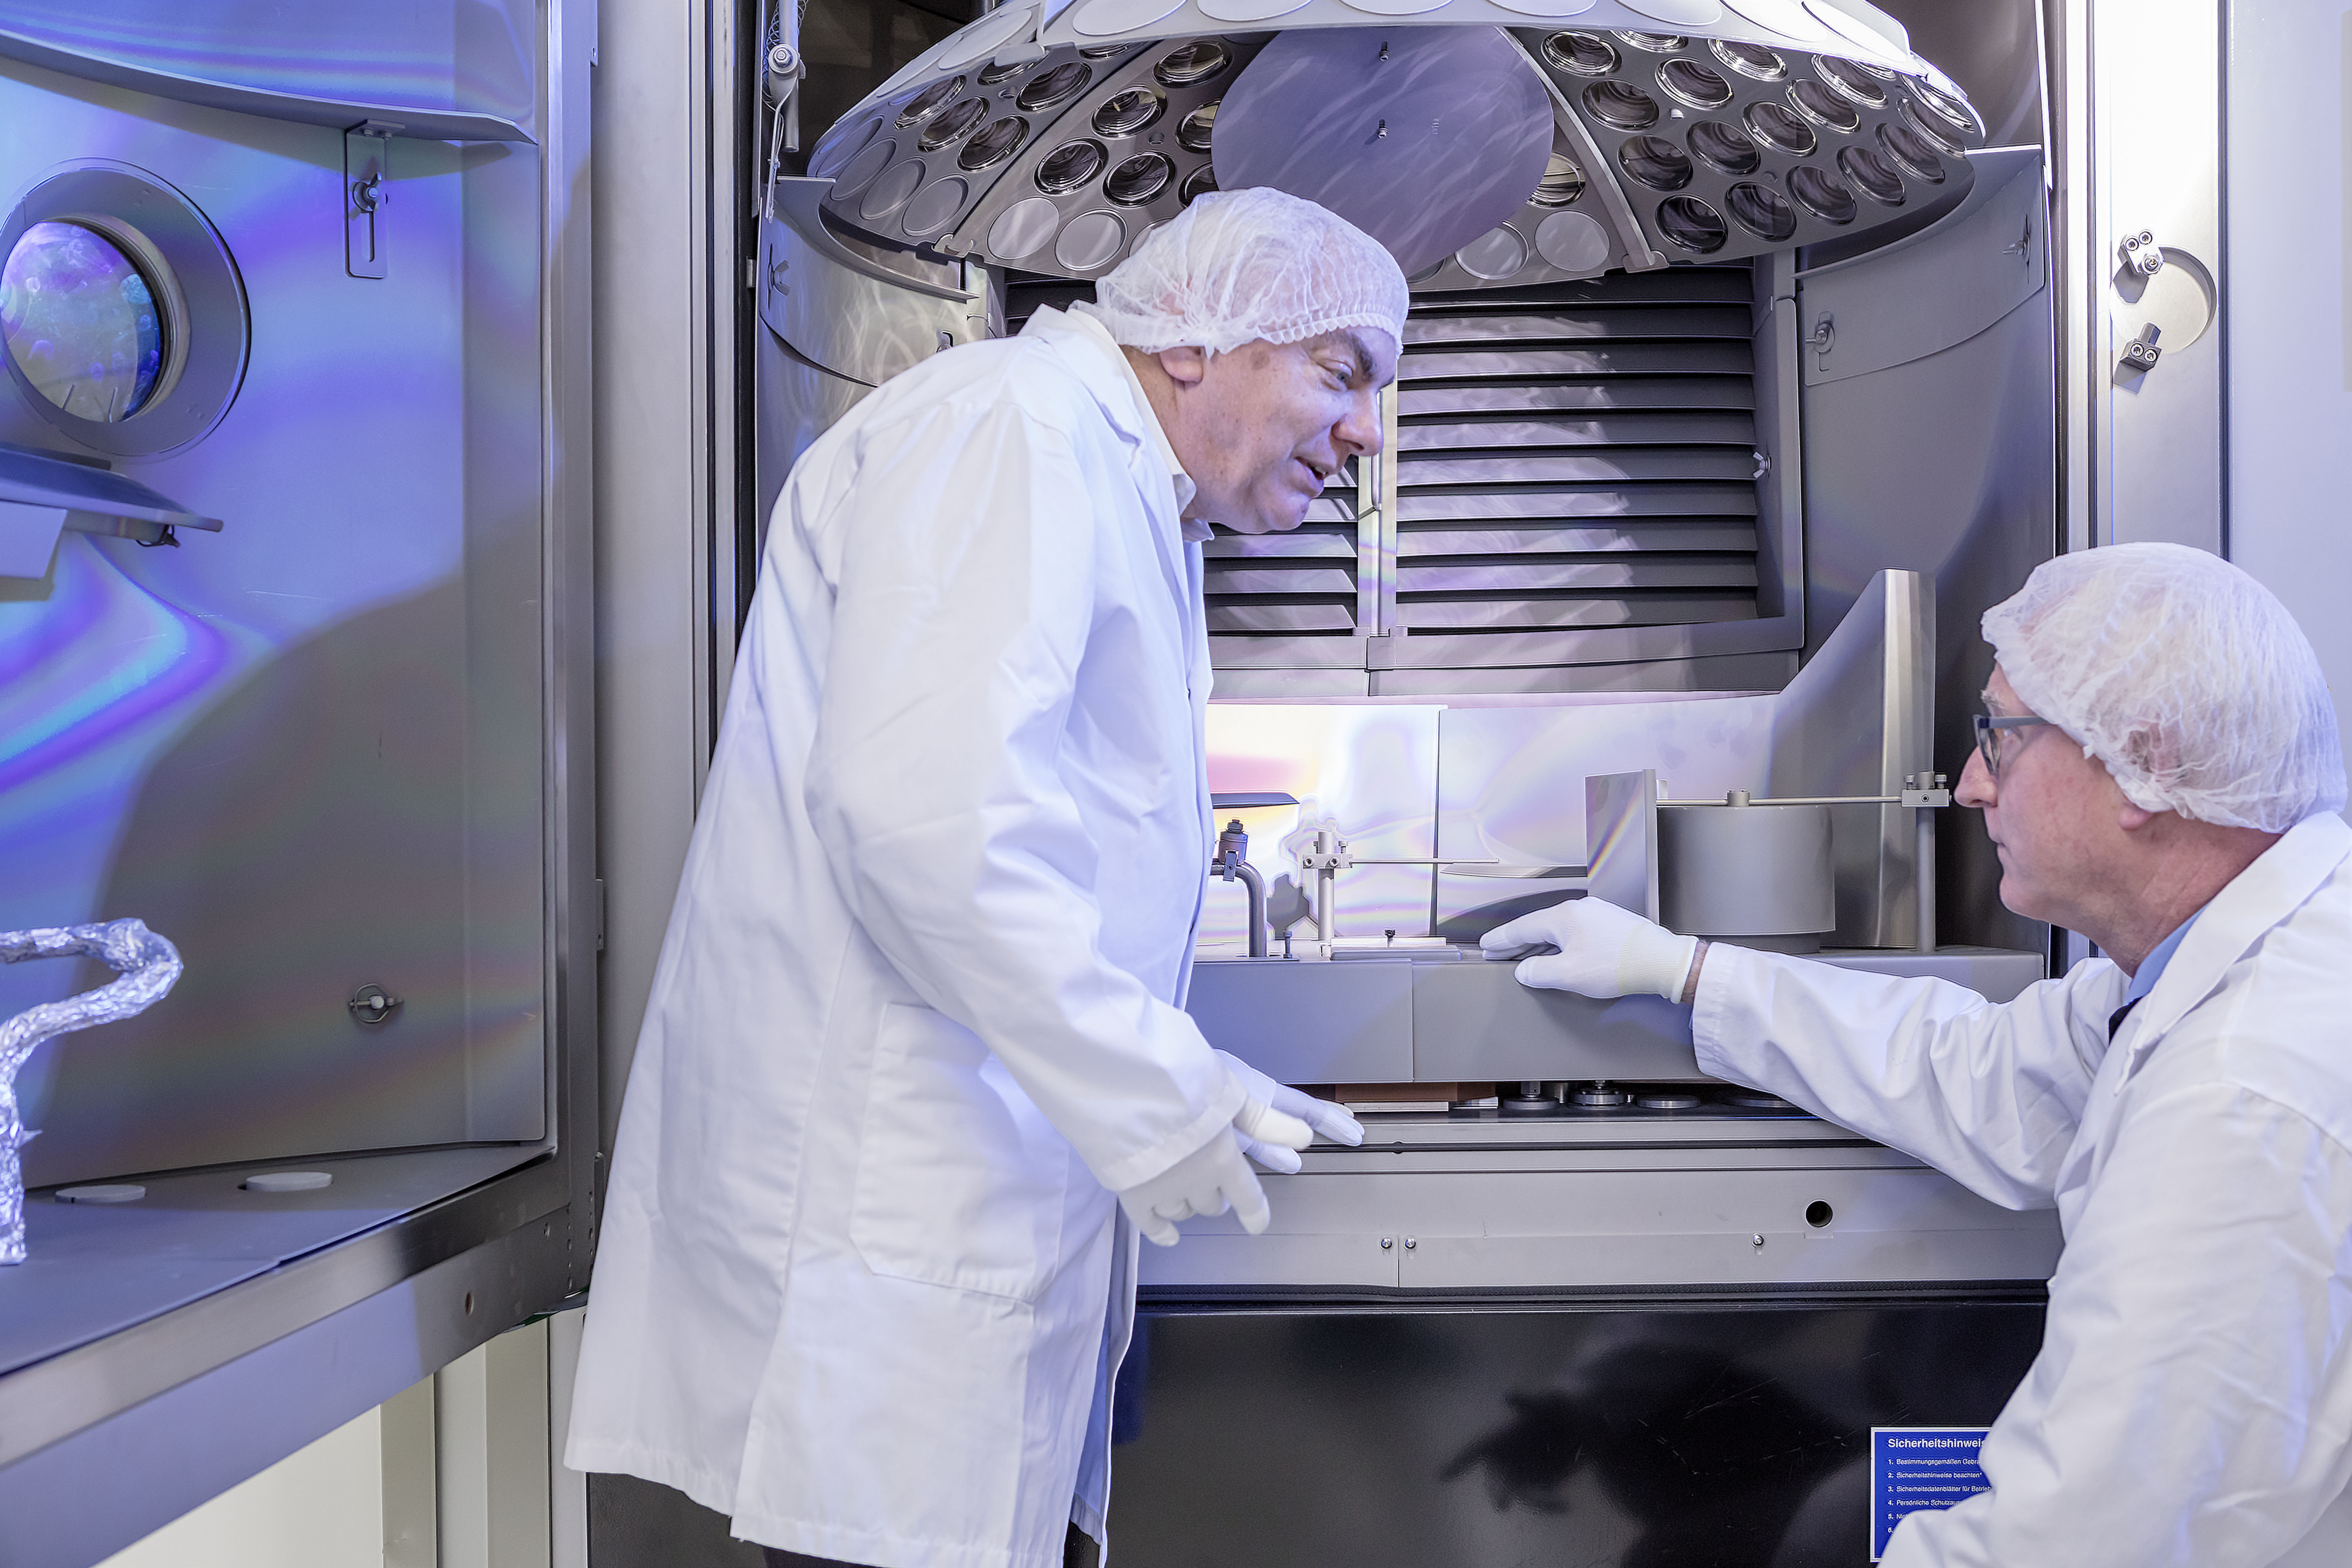 Bühler coating specialist Karl Matl and ZEISS researcher Markus Haidl work together to perfect the coating process.